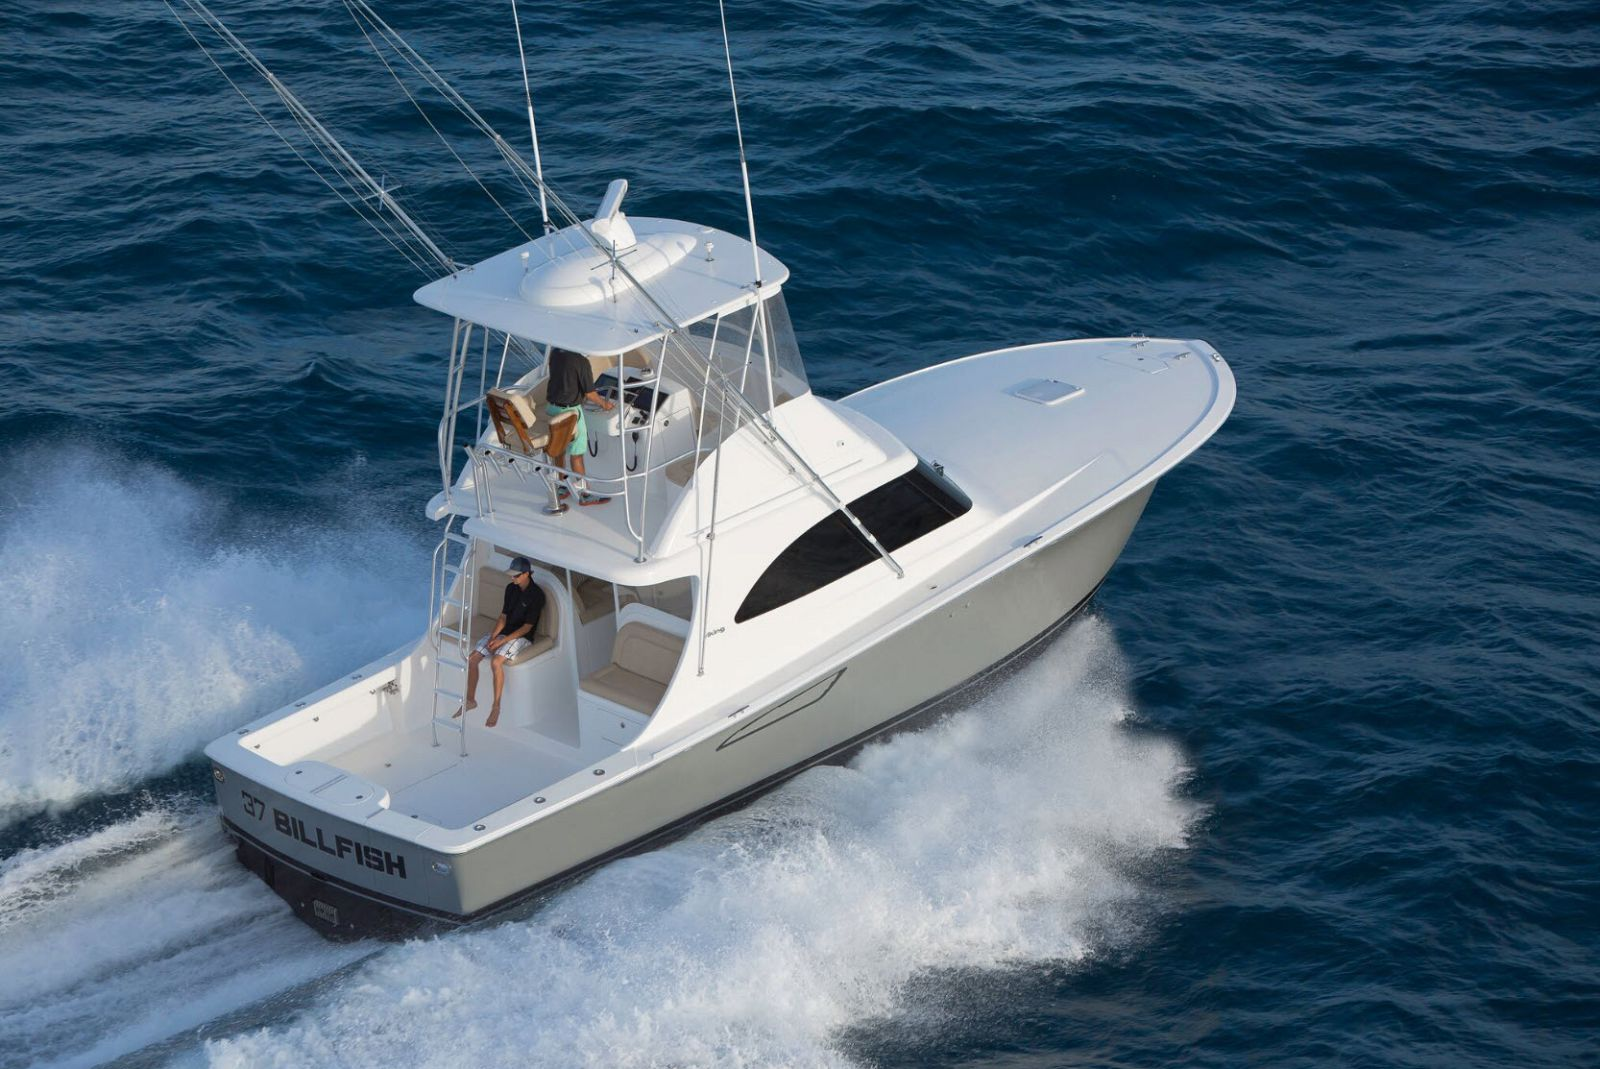 Viking Yachts 37 Billfish Profile Image